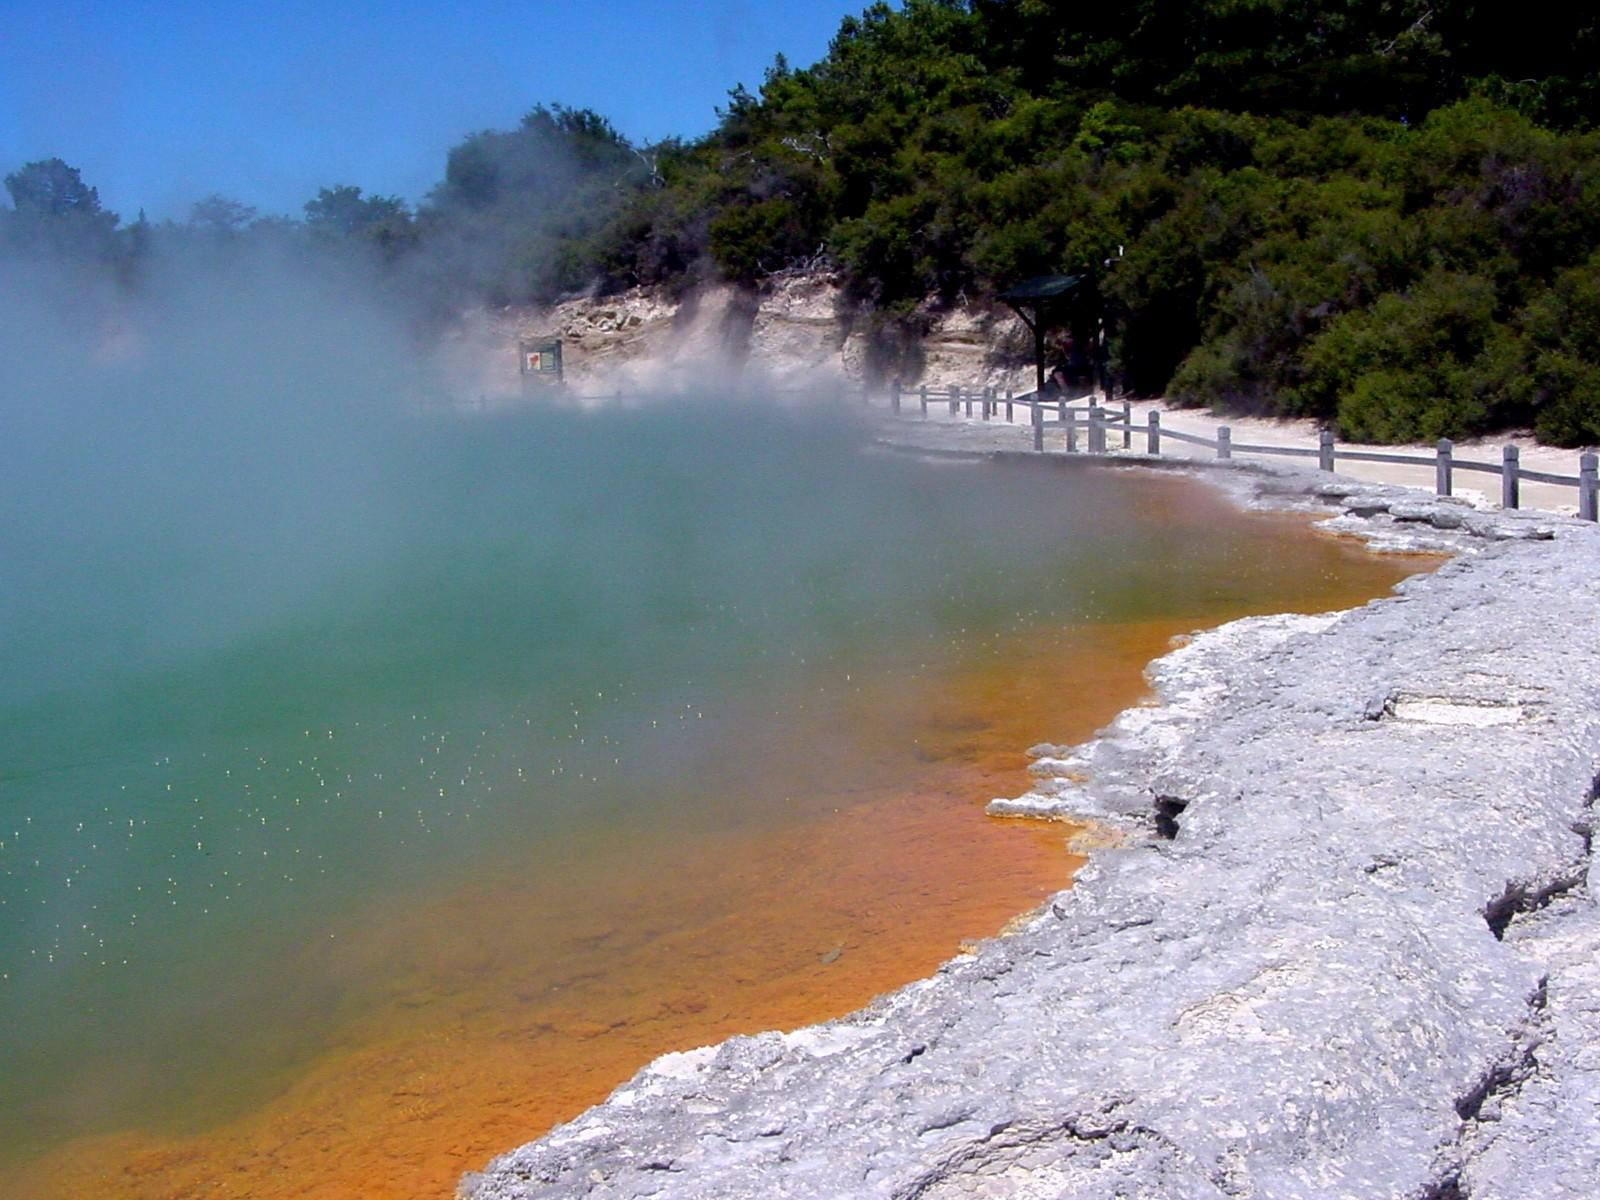 New Zeland's Amazing Champagne Pool от Marinara за 29 jan 2013